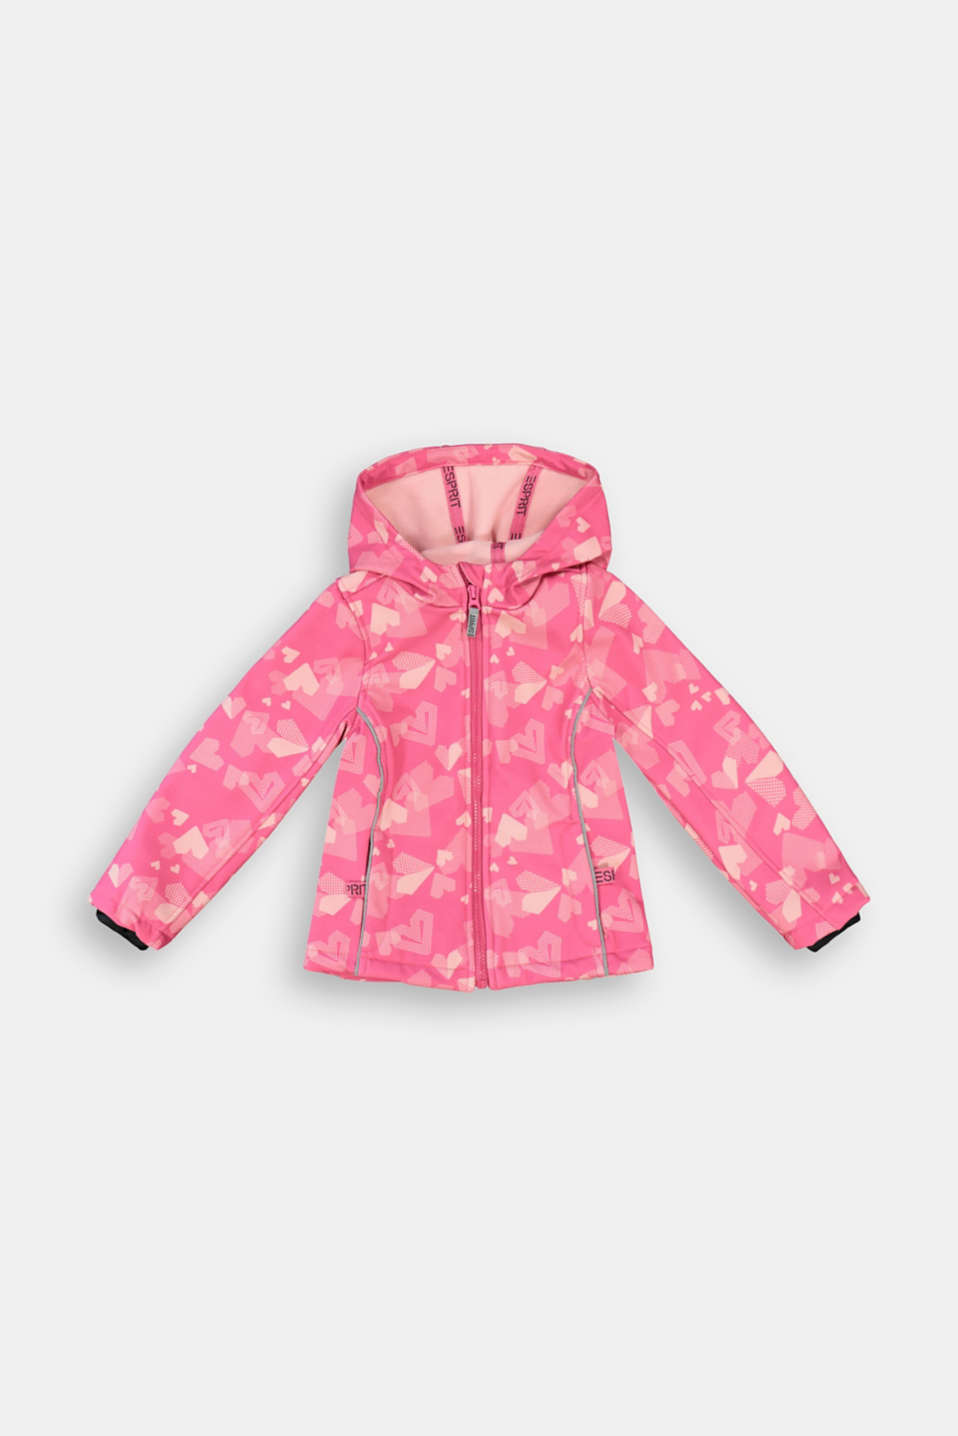 Esprit - Softshell jacket with a heart print